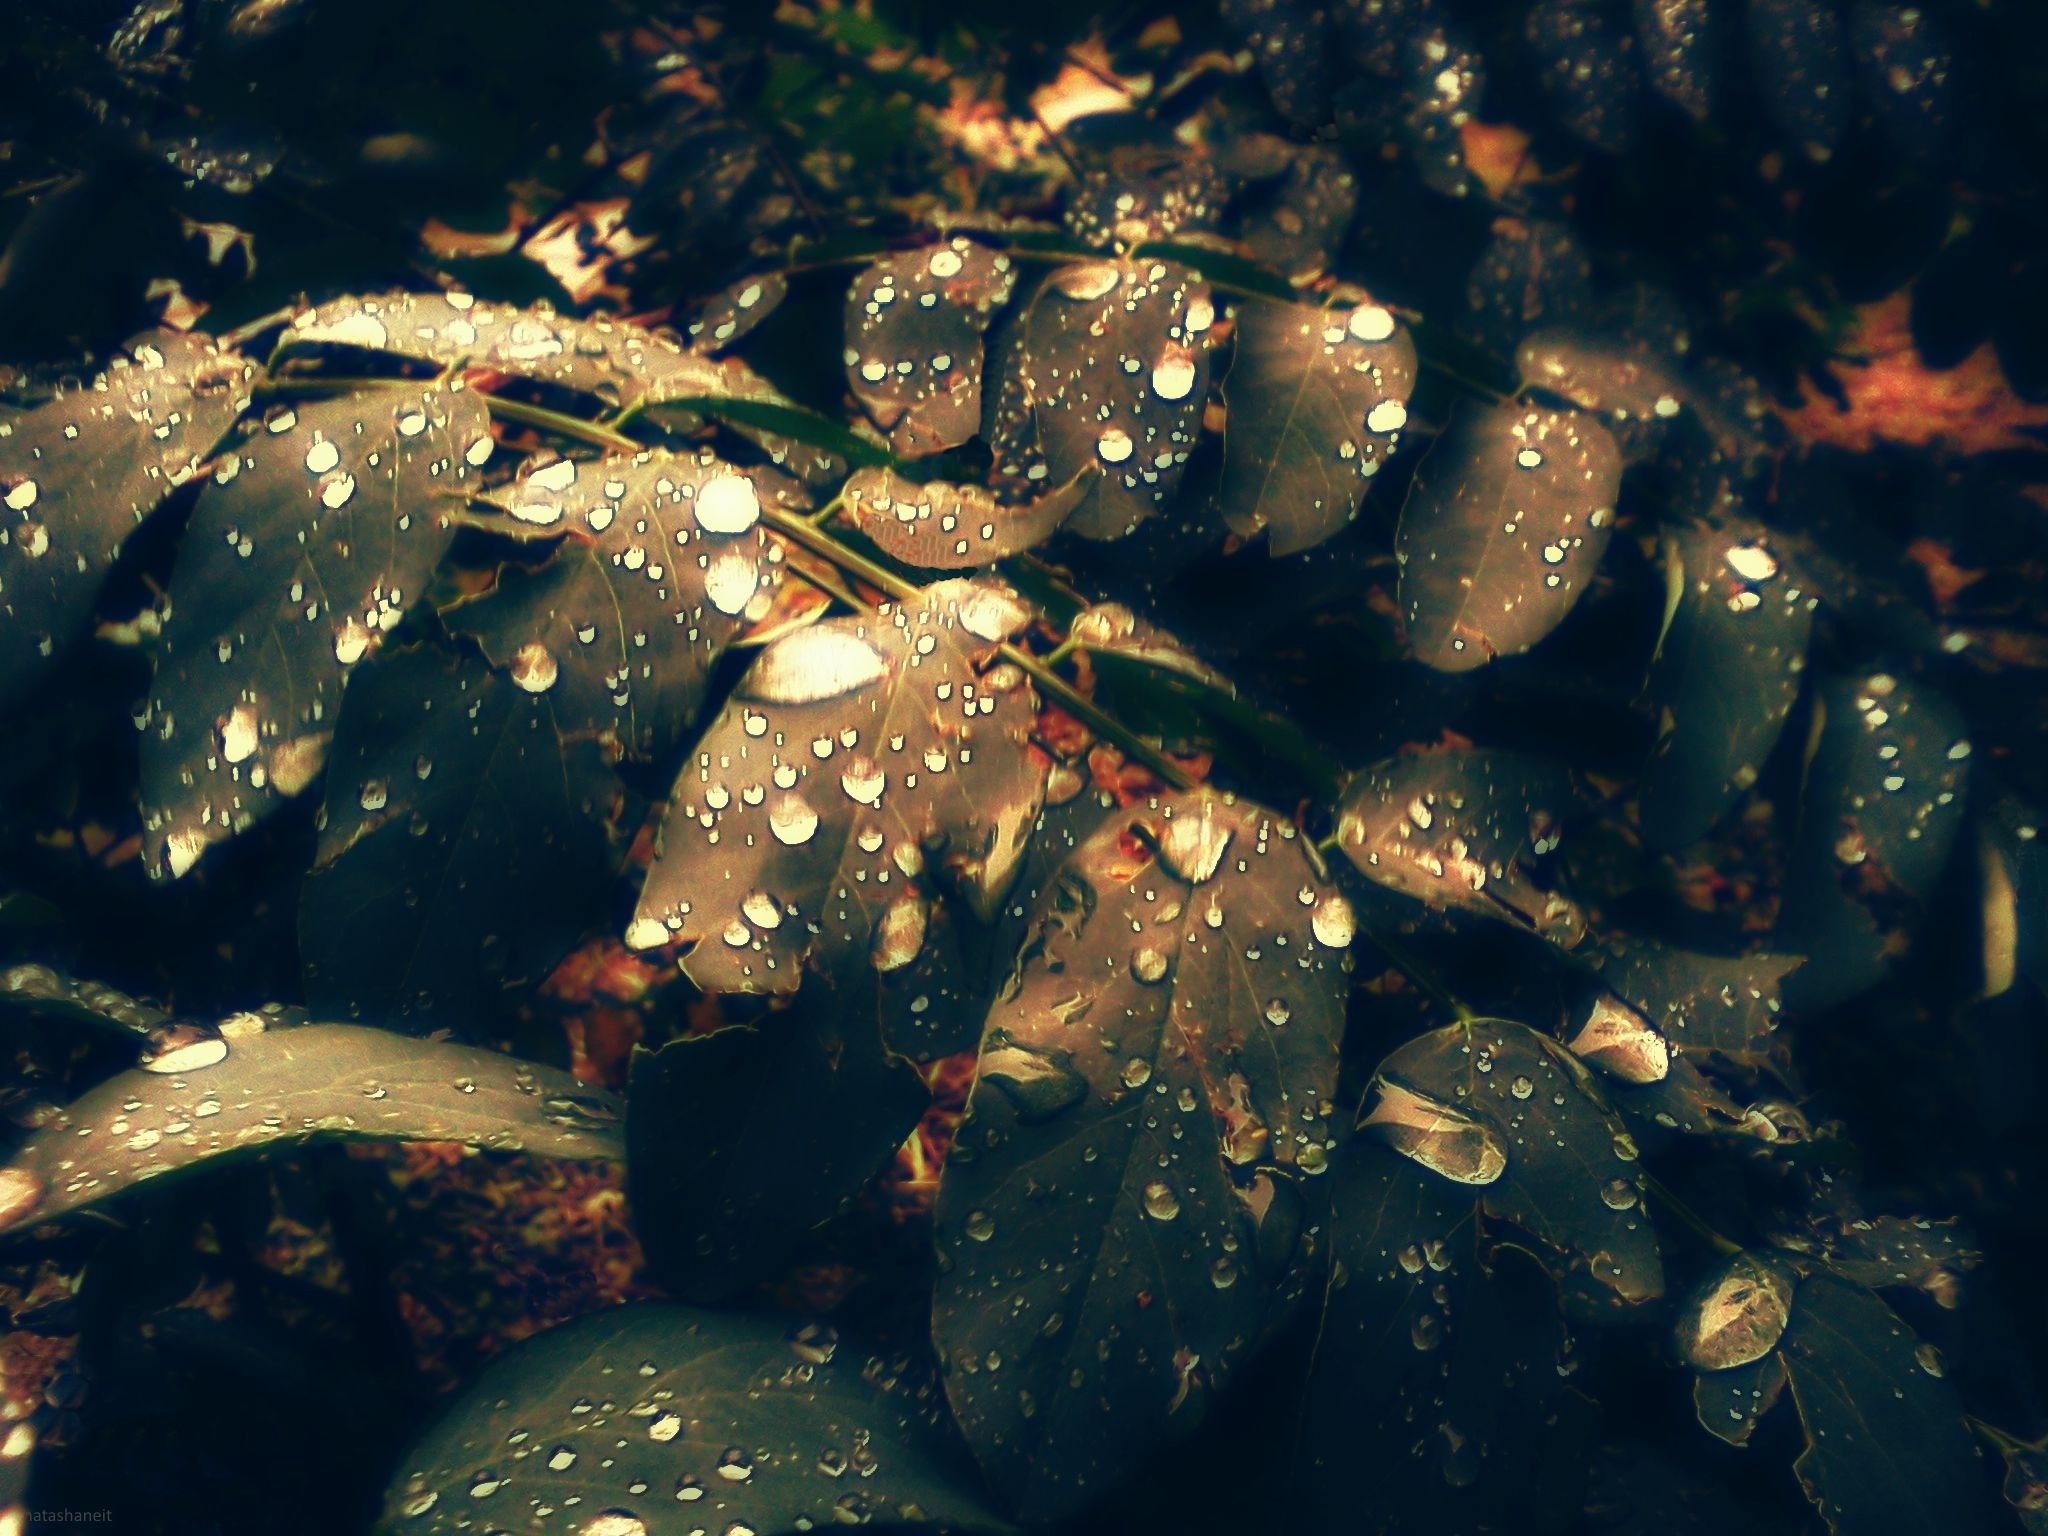 Leaves after the rain by natashaneit